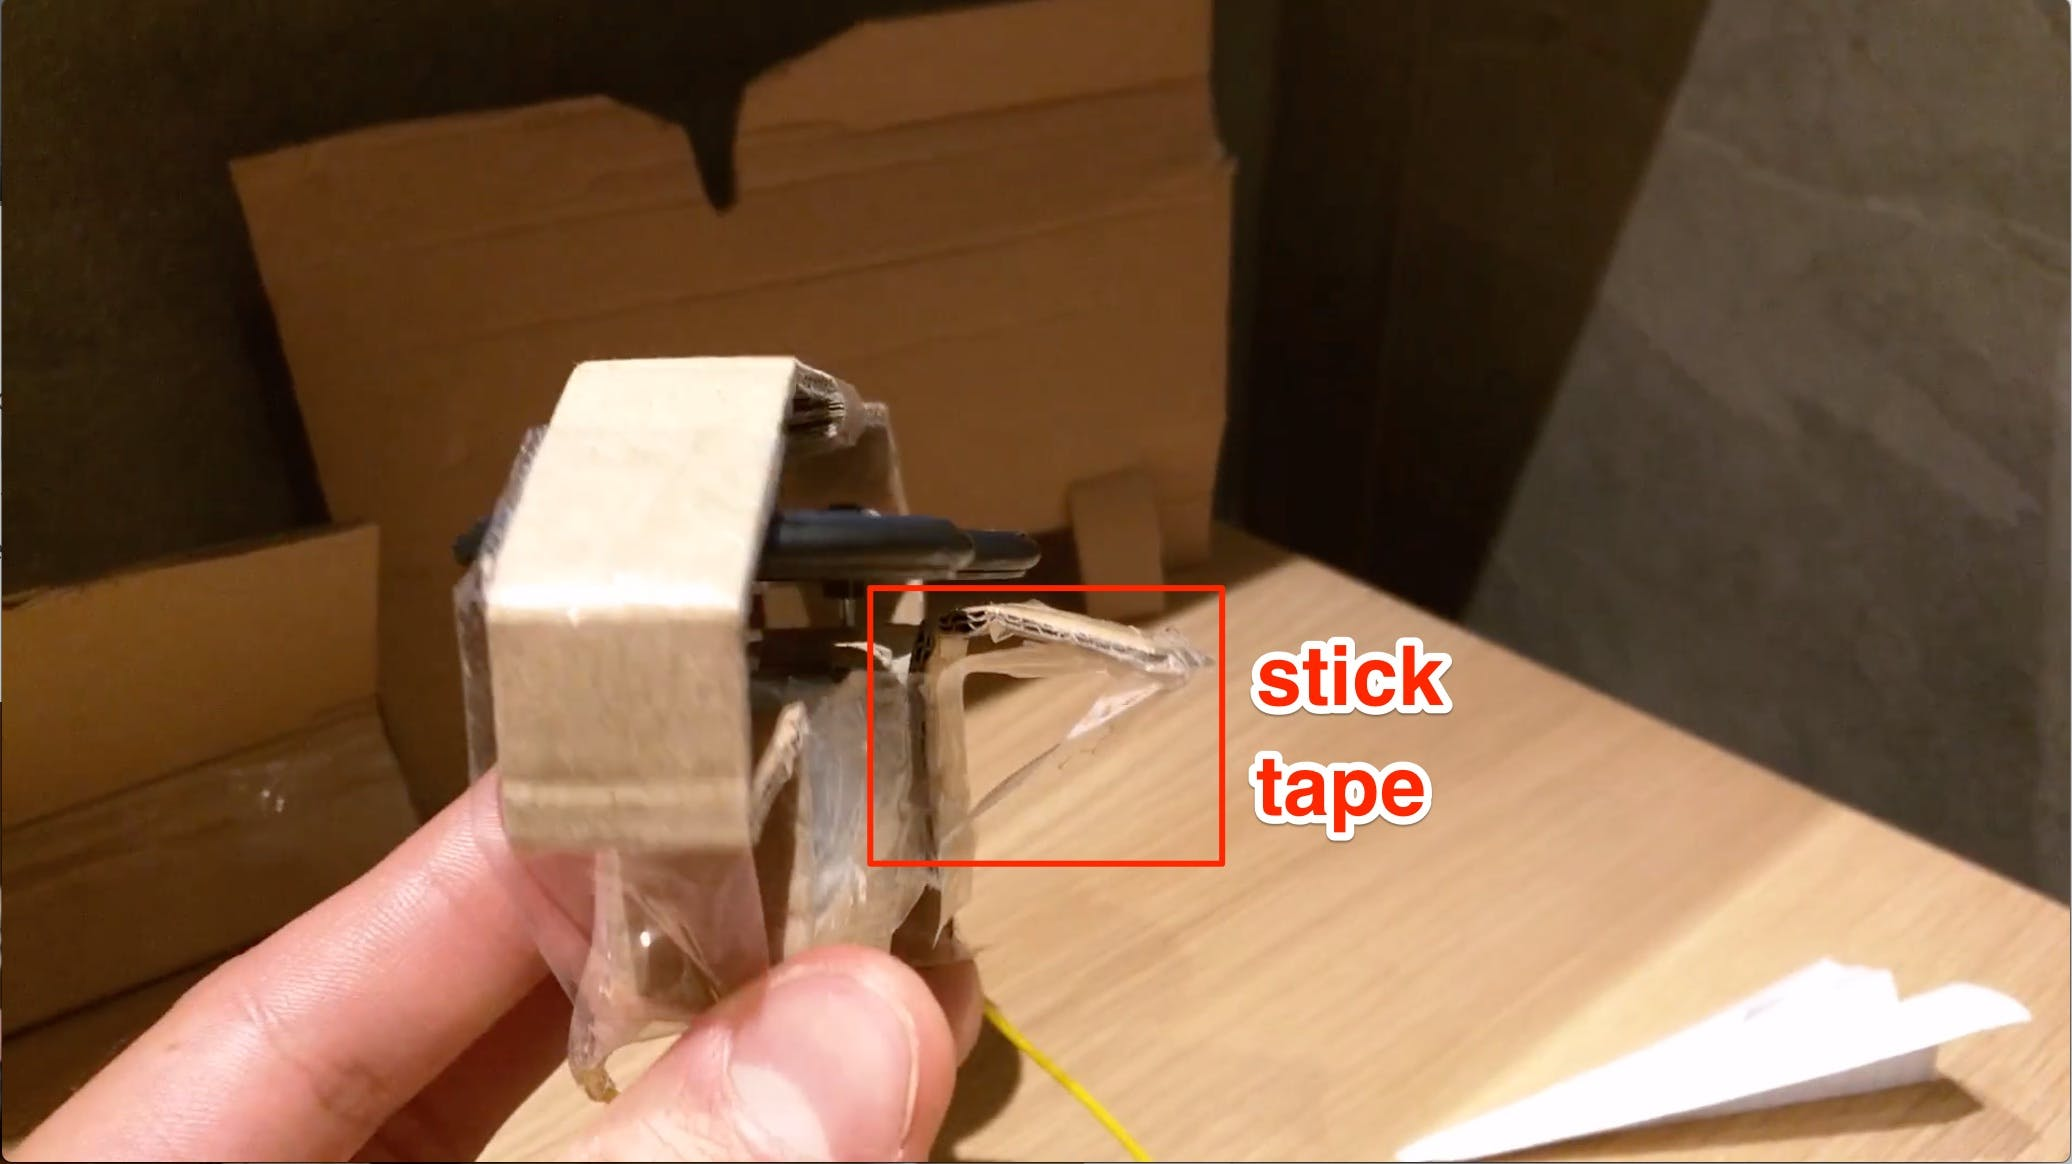 The stick tape helps the base to keep its angle. That angle is used to pull up the plain's nose